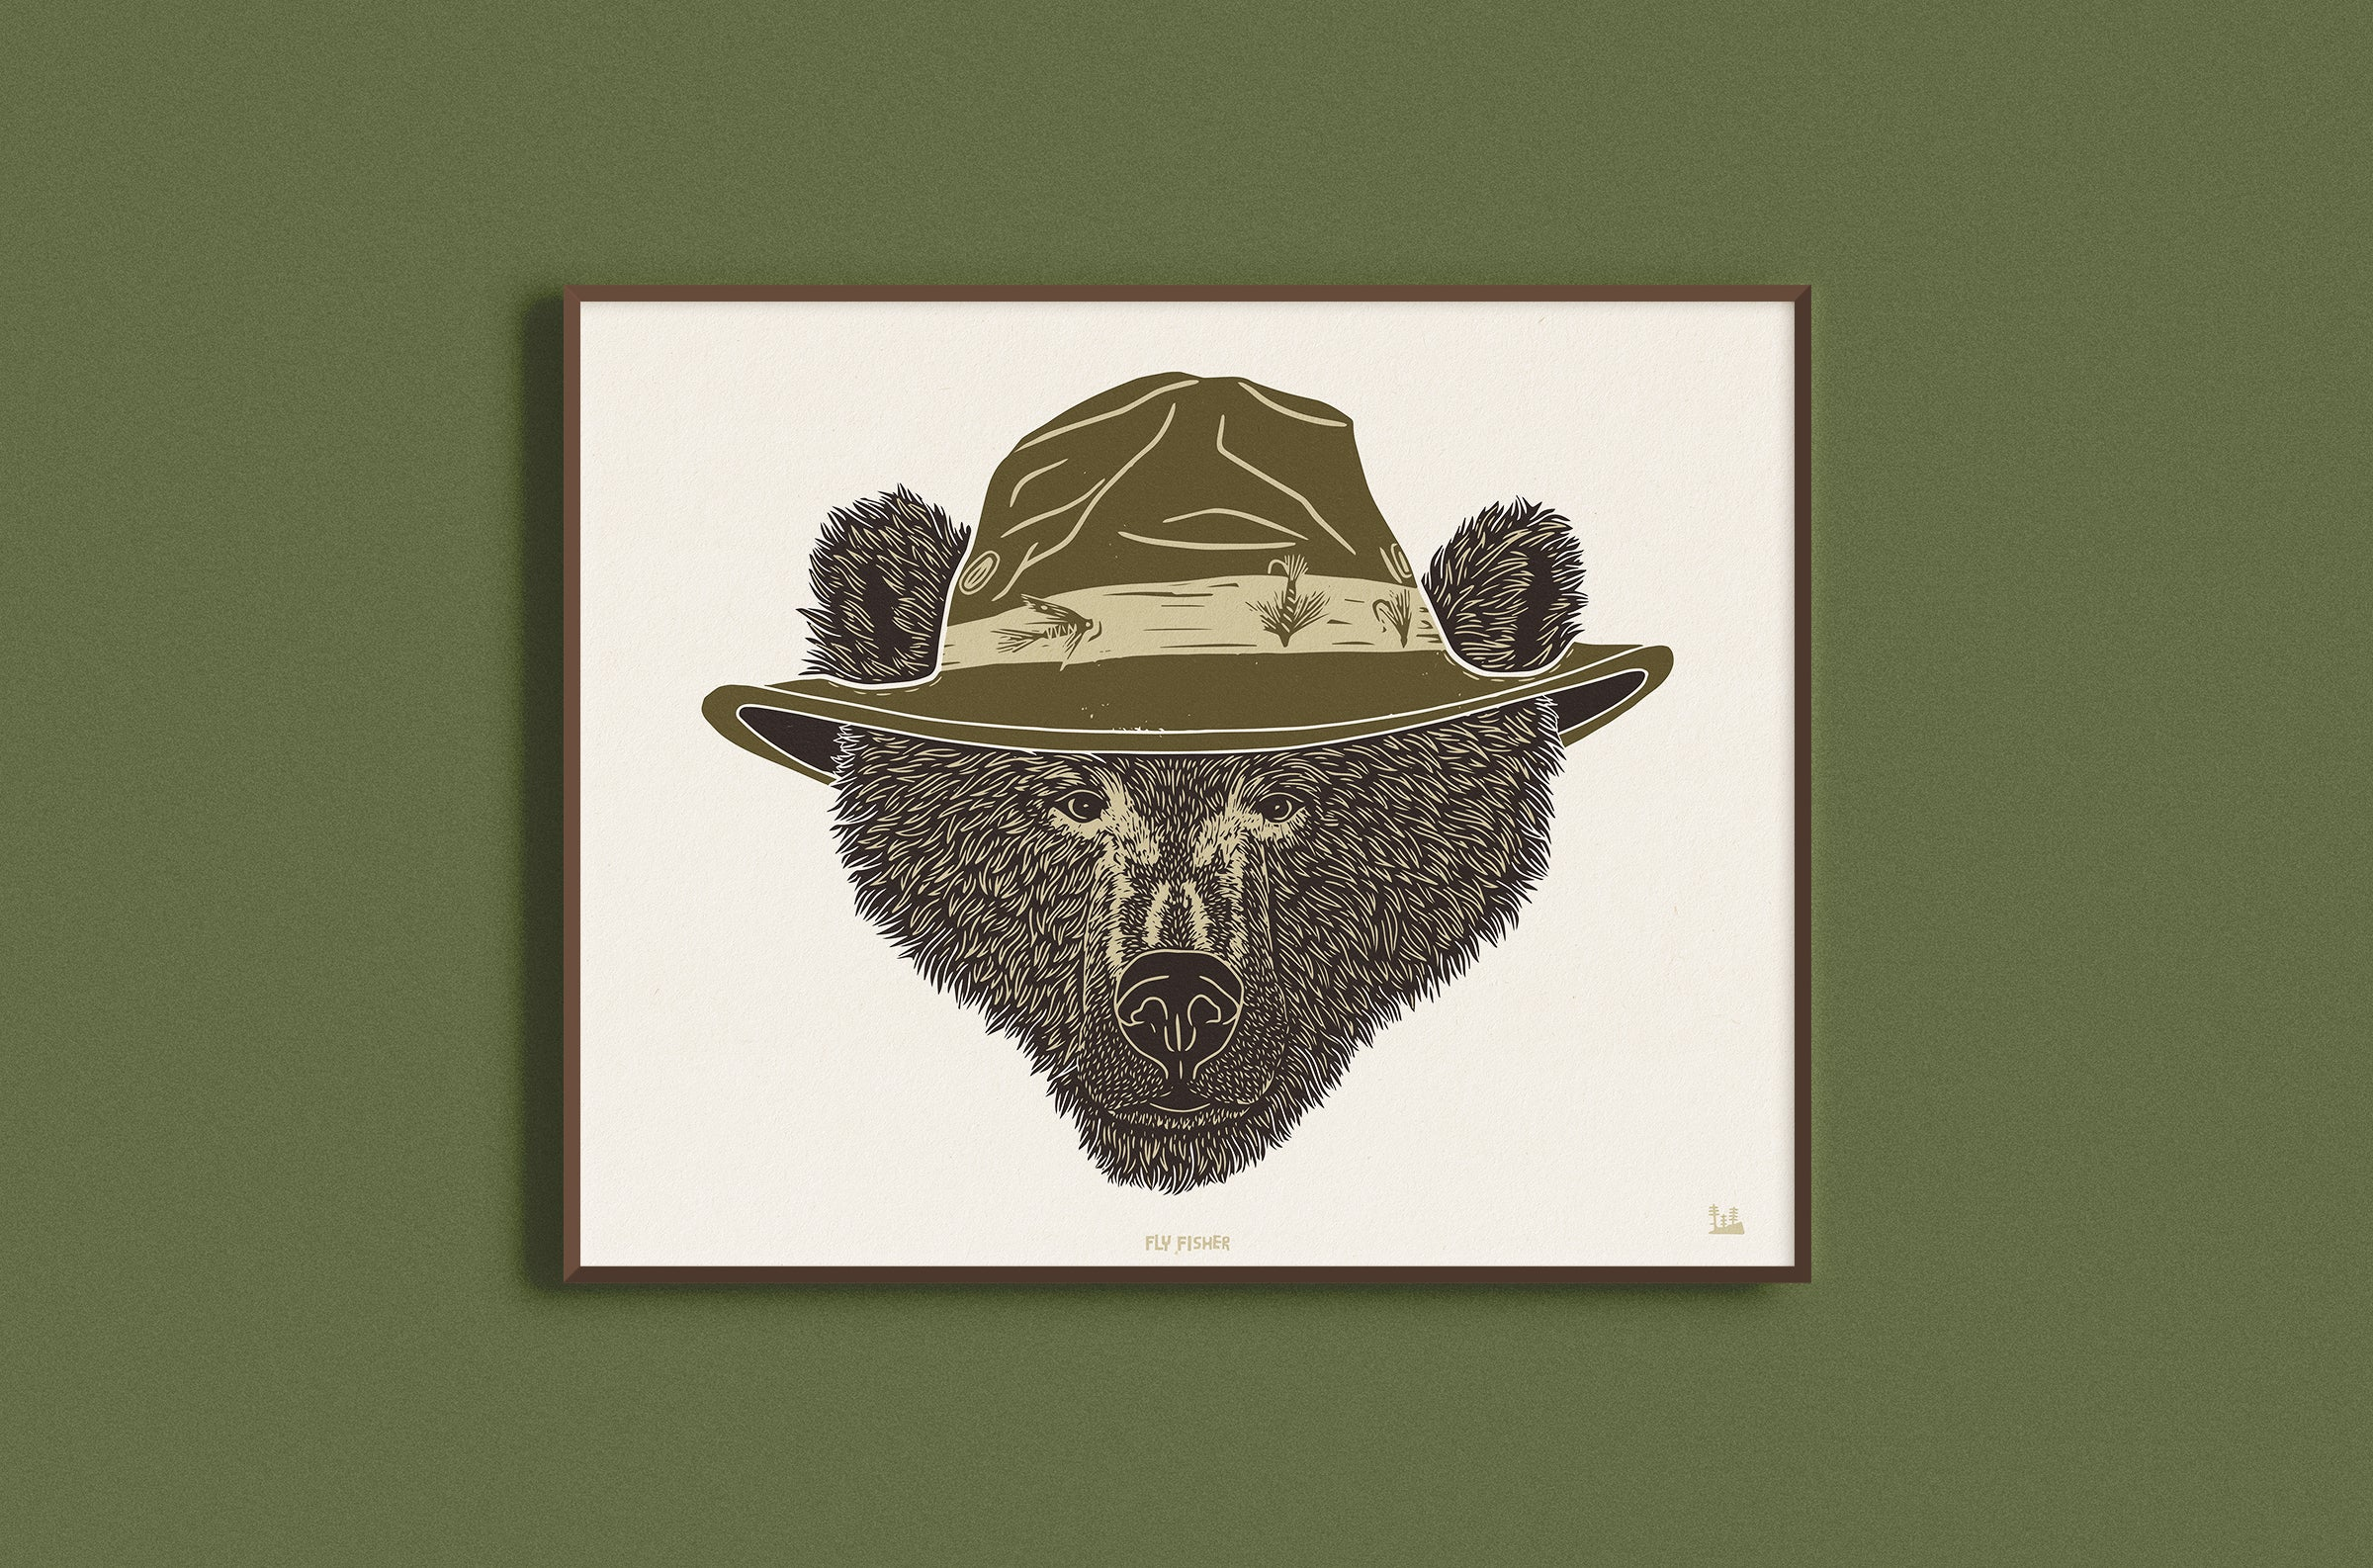 Fly Fisher Print